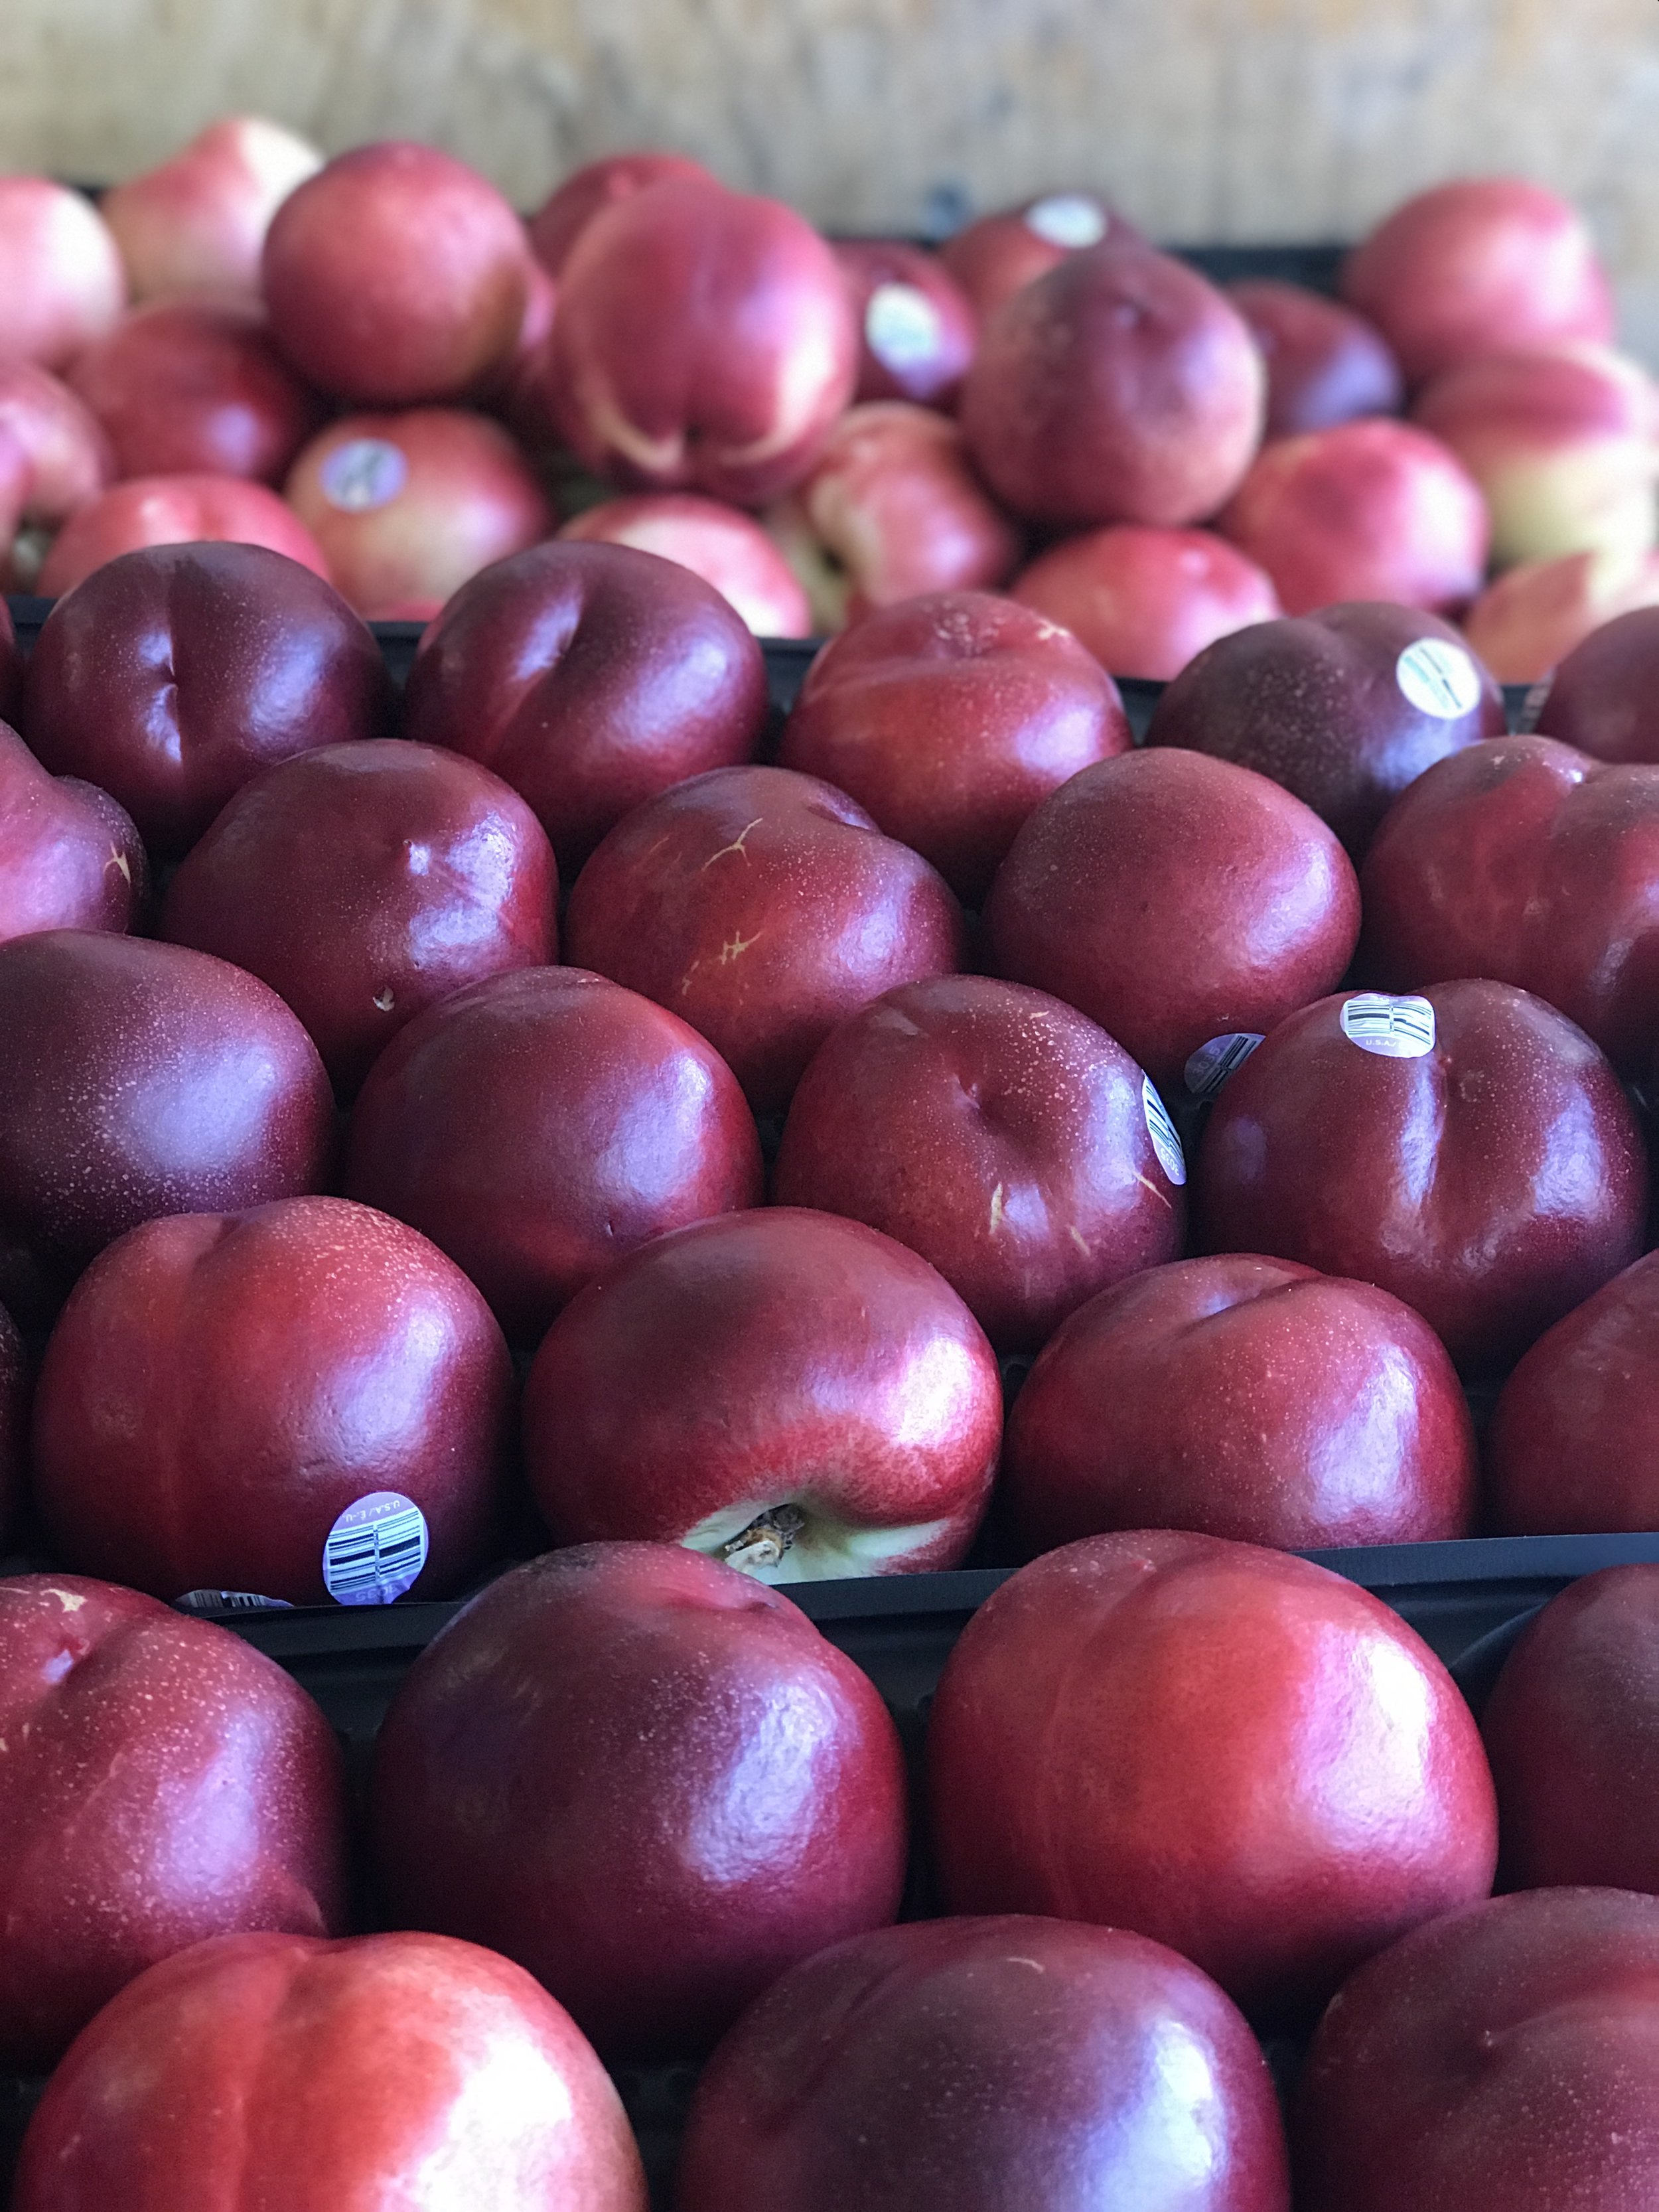 Dean's Produce Millbrae - Here for you 7 days a week from 7am-8pm